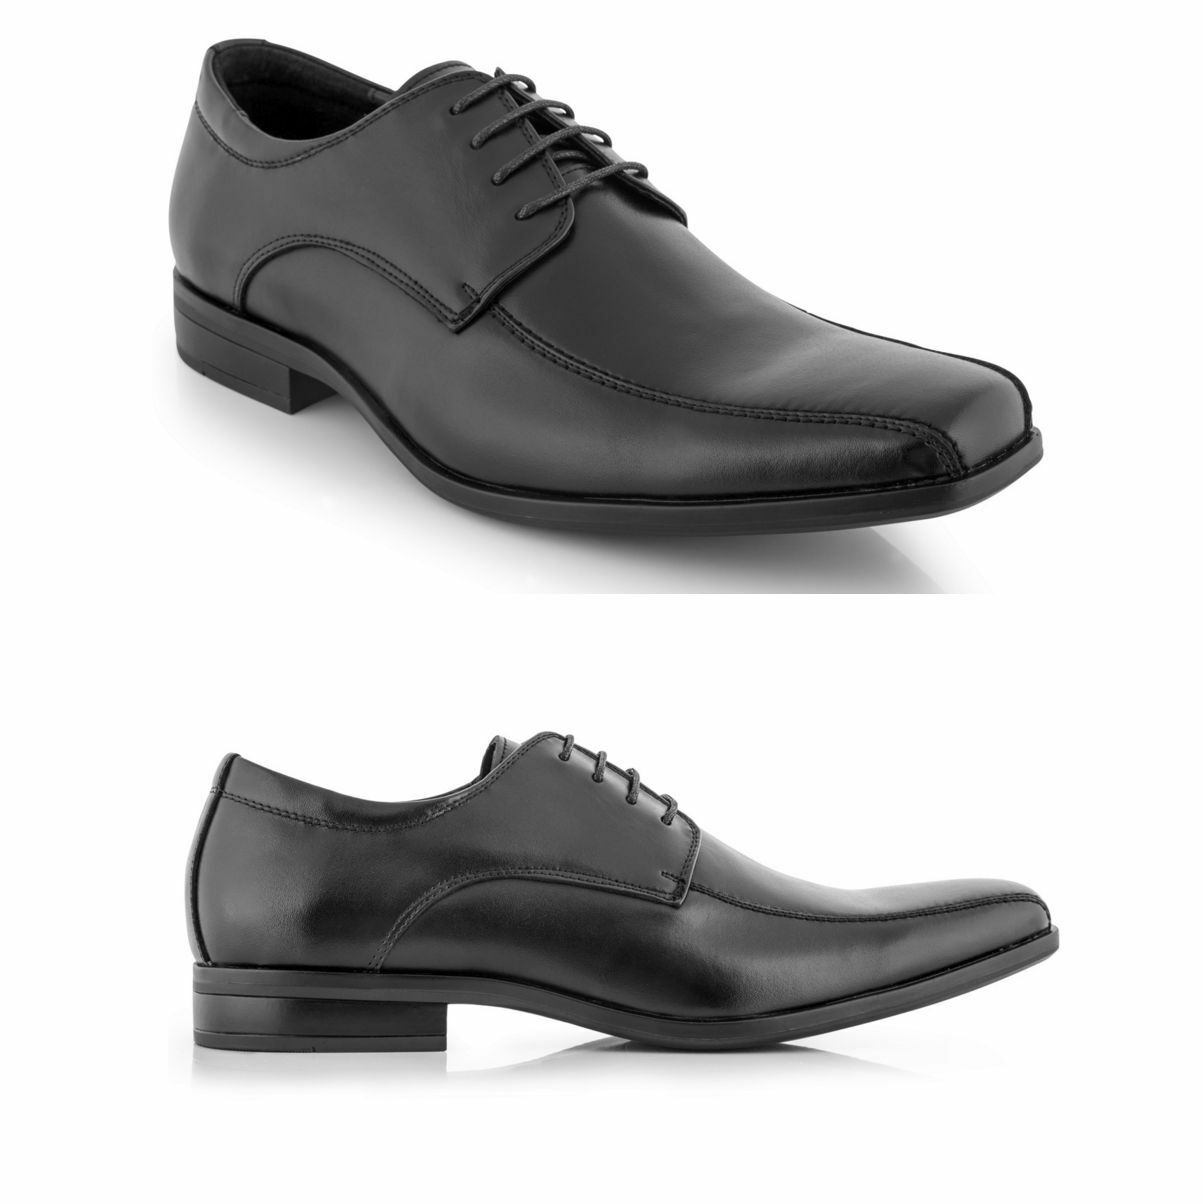 NEW MENS JULIUS MARLOW REEF MEN'S schwarz LEATHER WORK LACE UP FORMAL DRESS schuhe